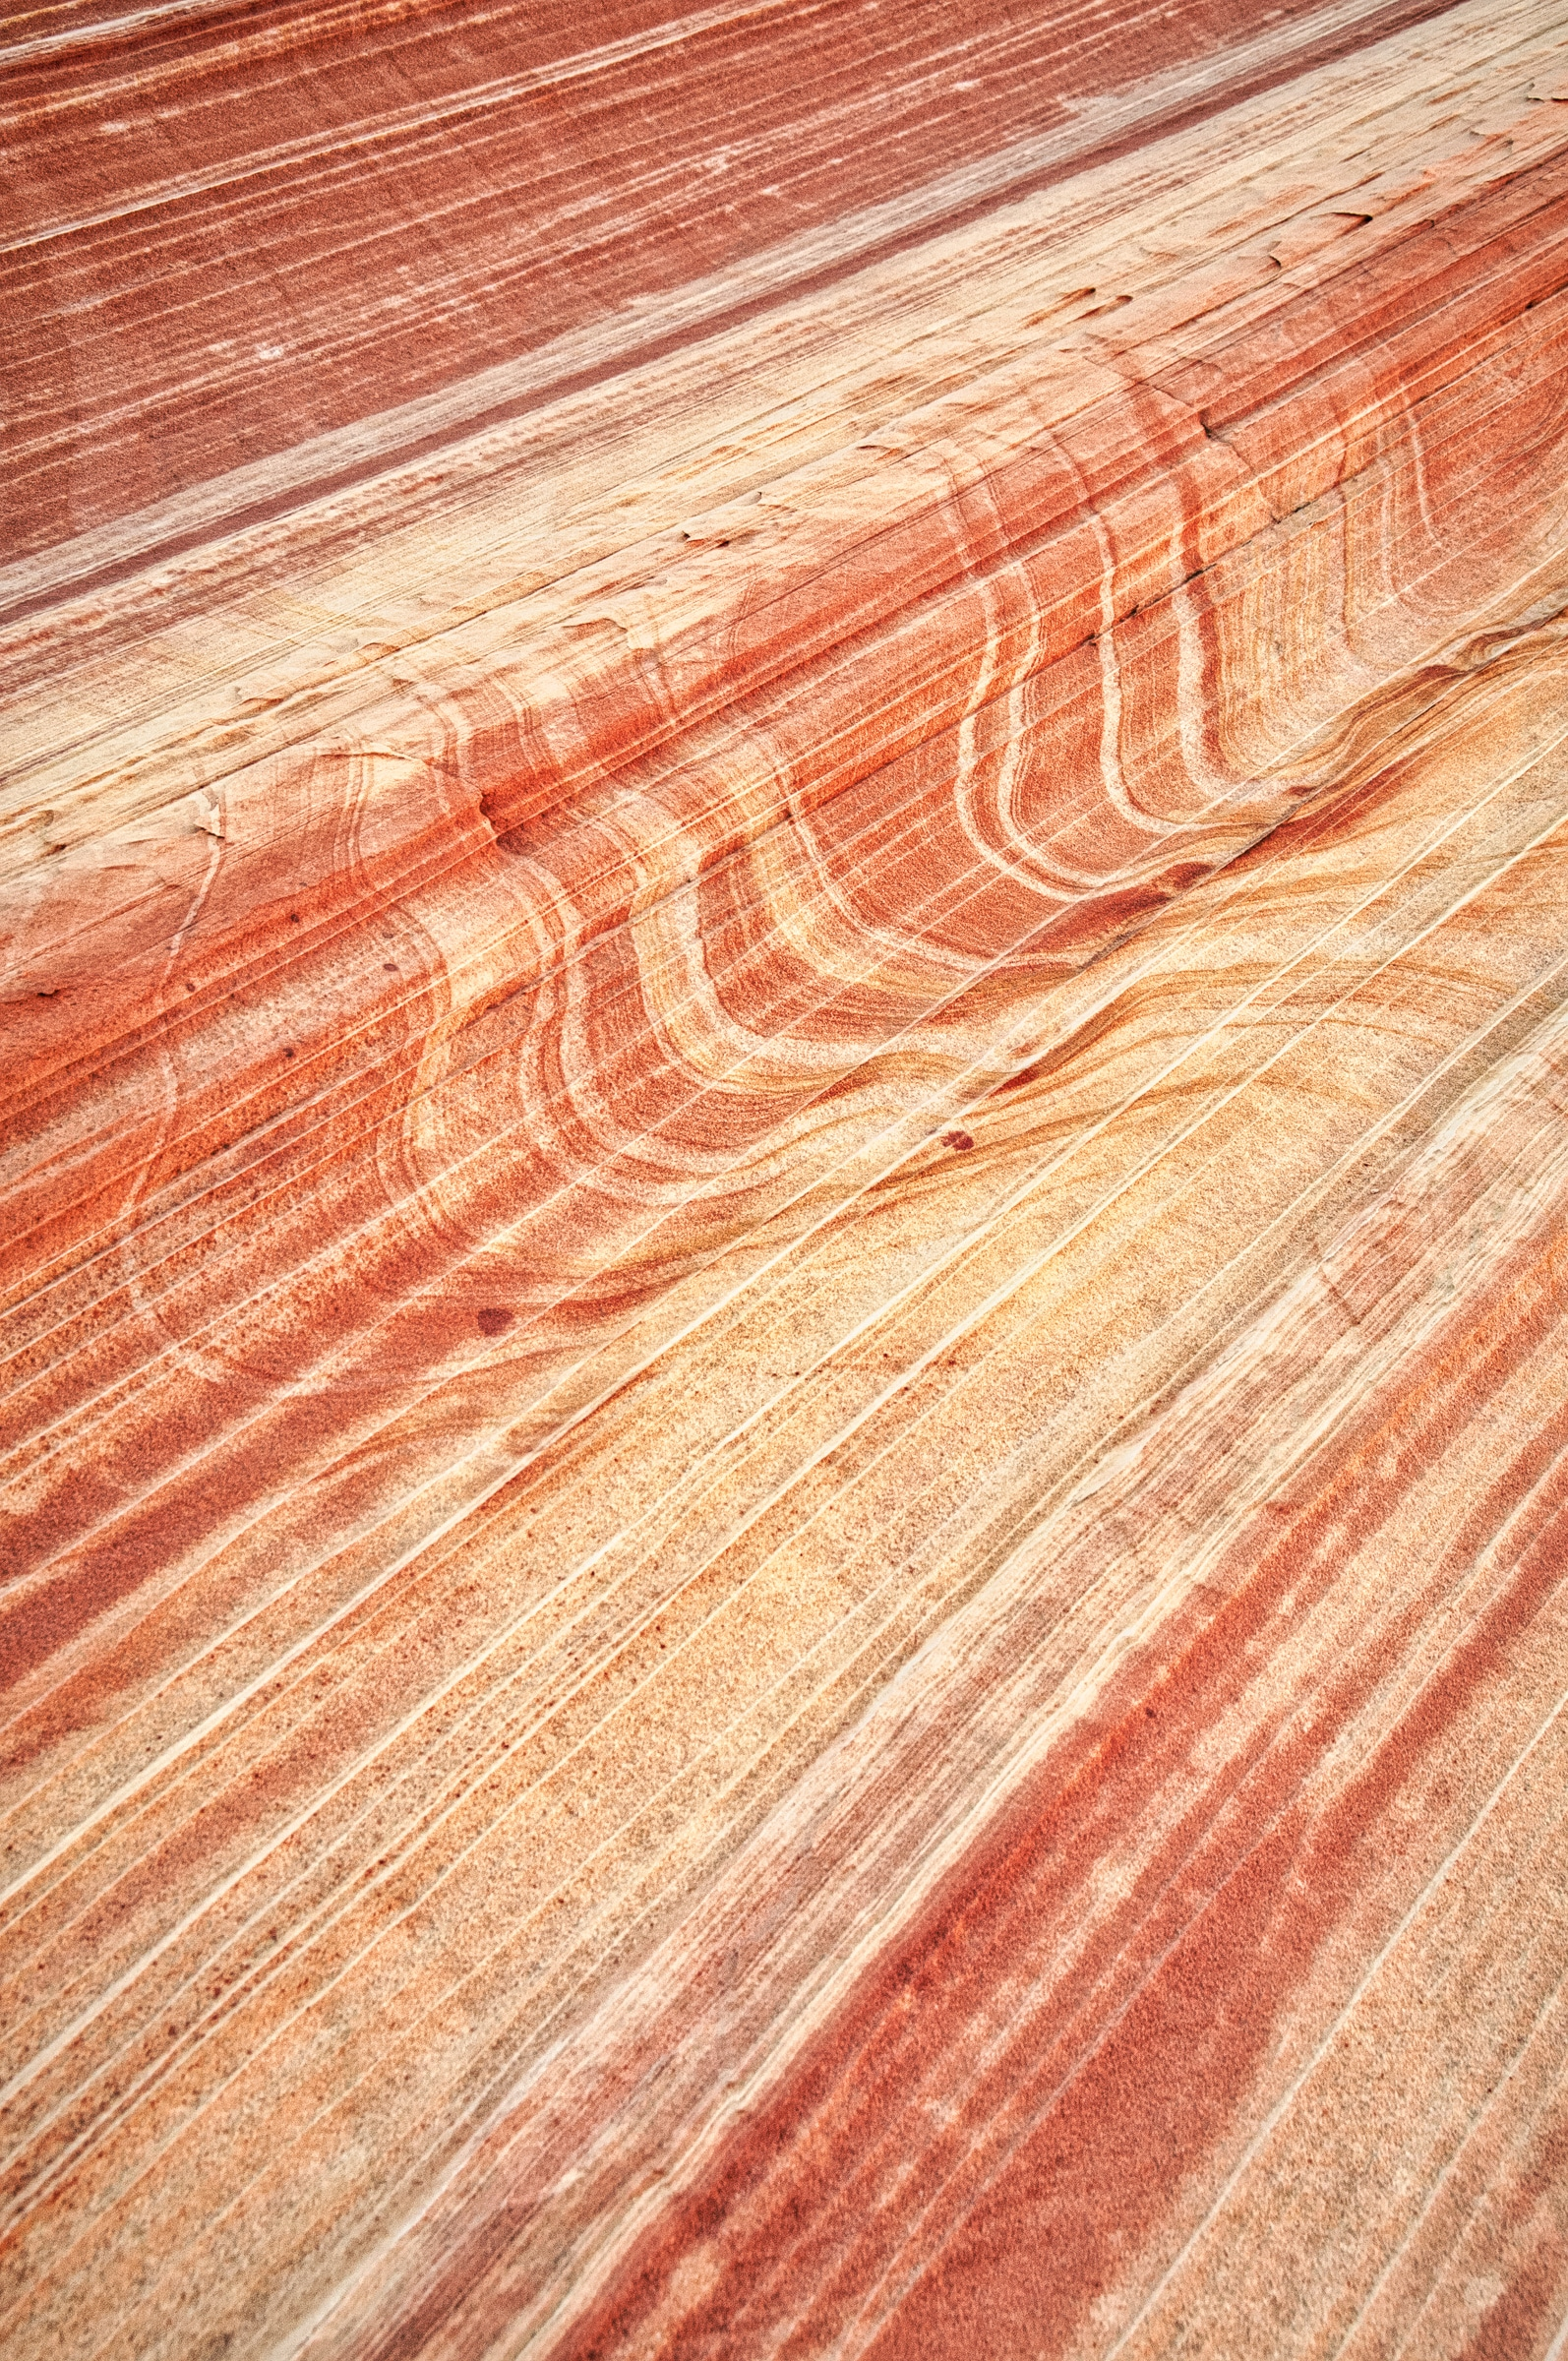 Closeup of Cross-Bedding at the Wave in Vermillion CLiffs National Monument.